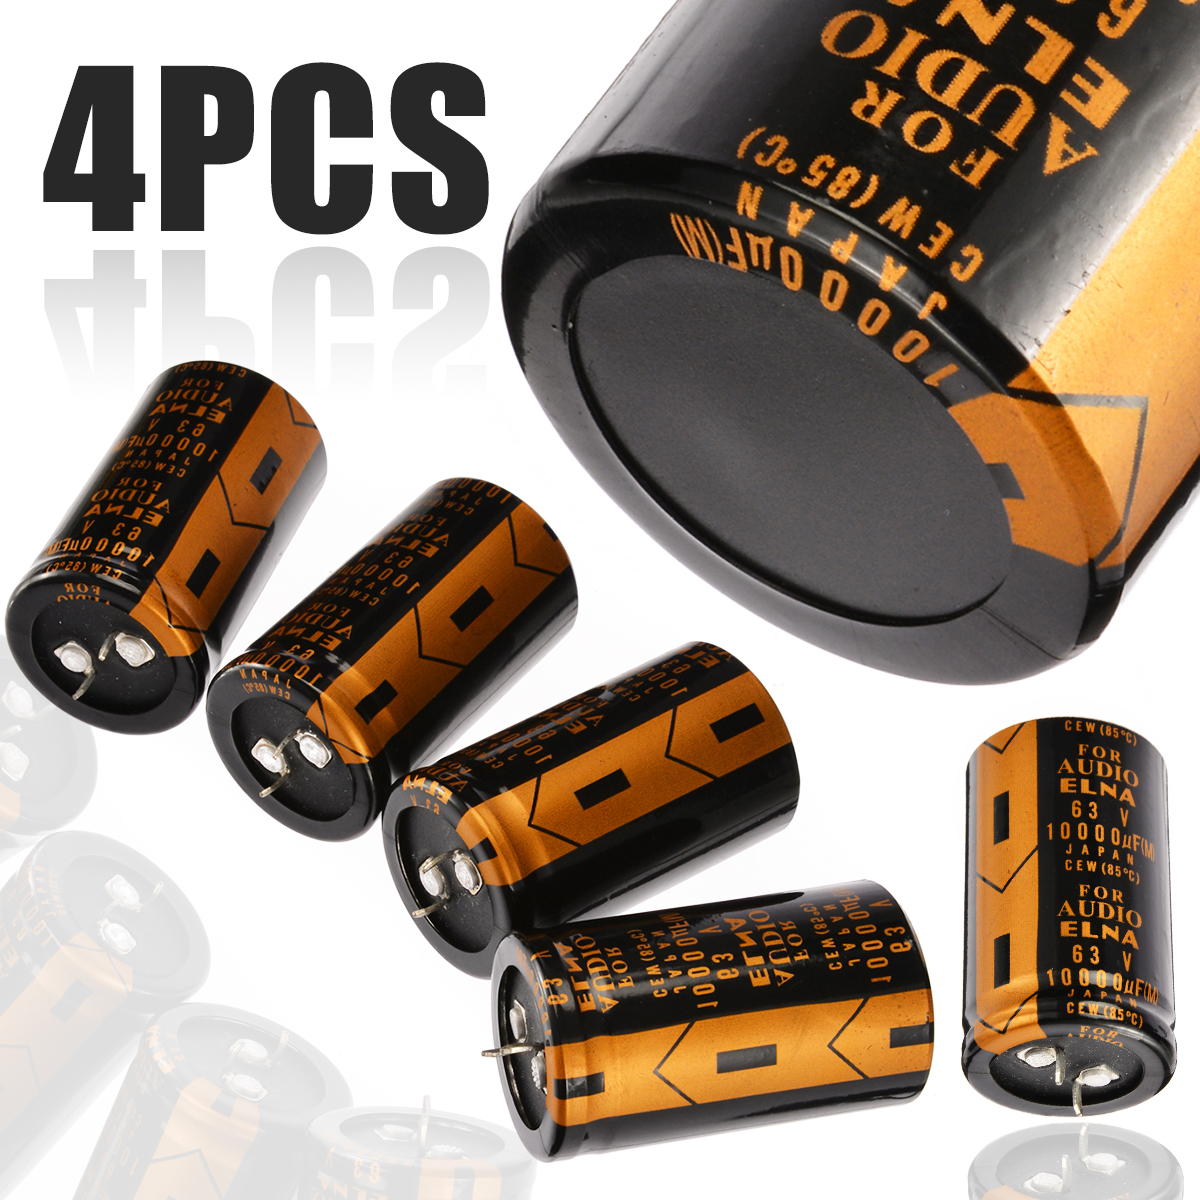 4PCs Replacement Electrolytic Capacitor For ELNA AUDIO 63V 10000UF 30*50mm High Quality